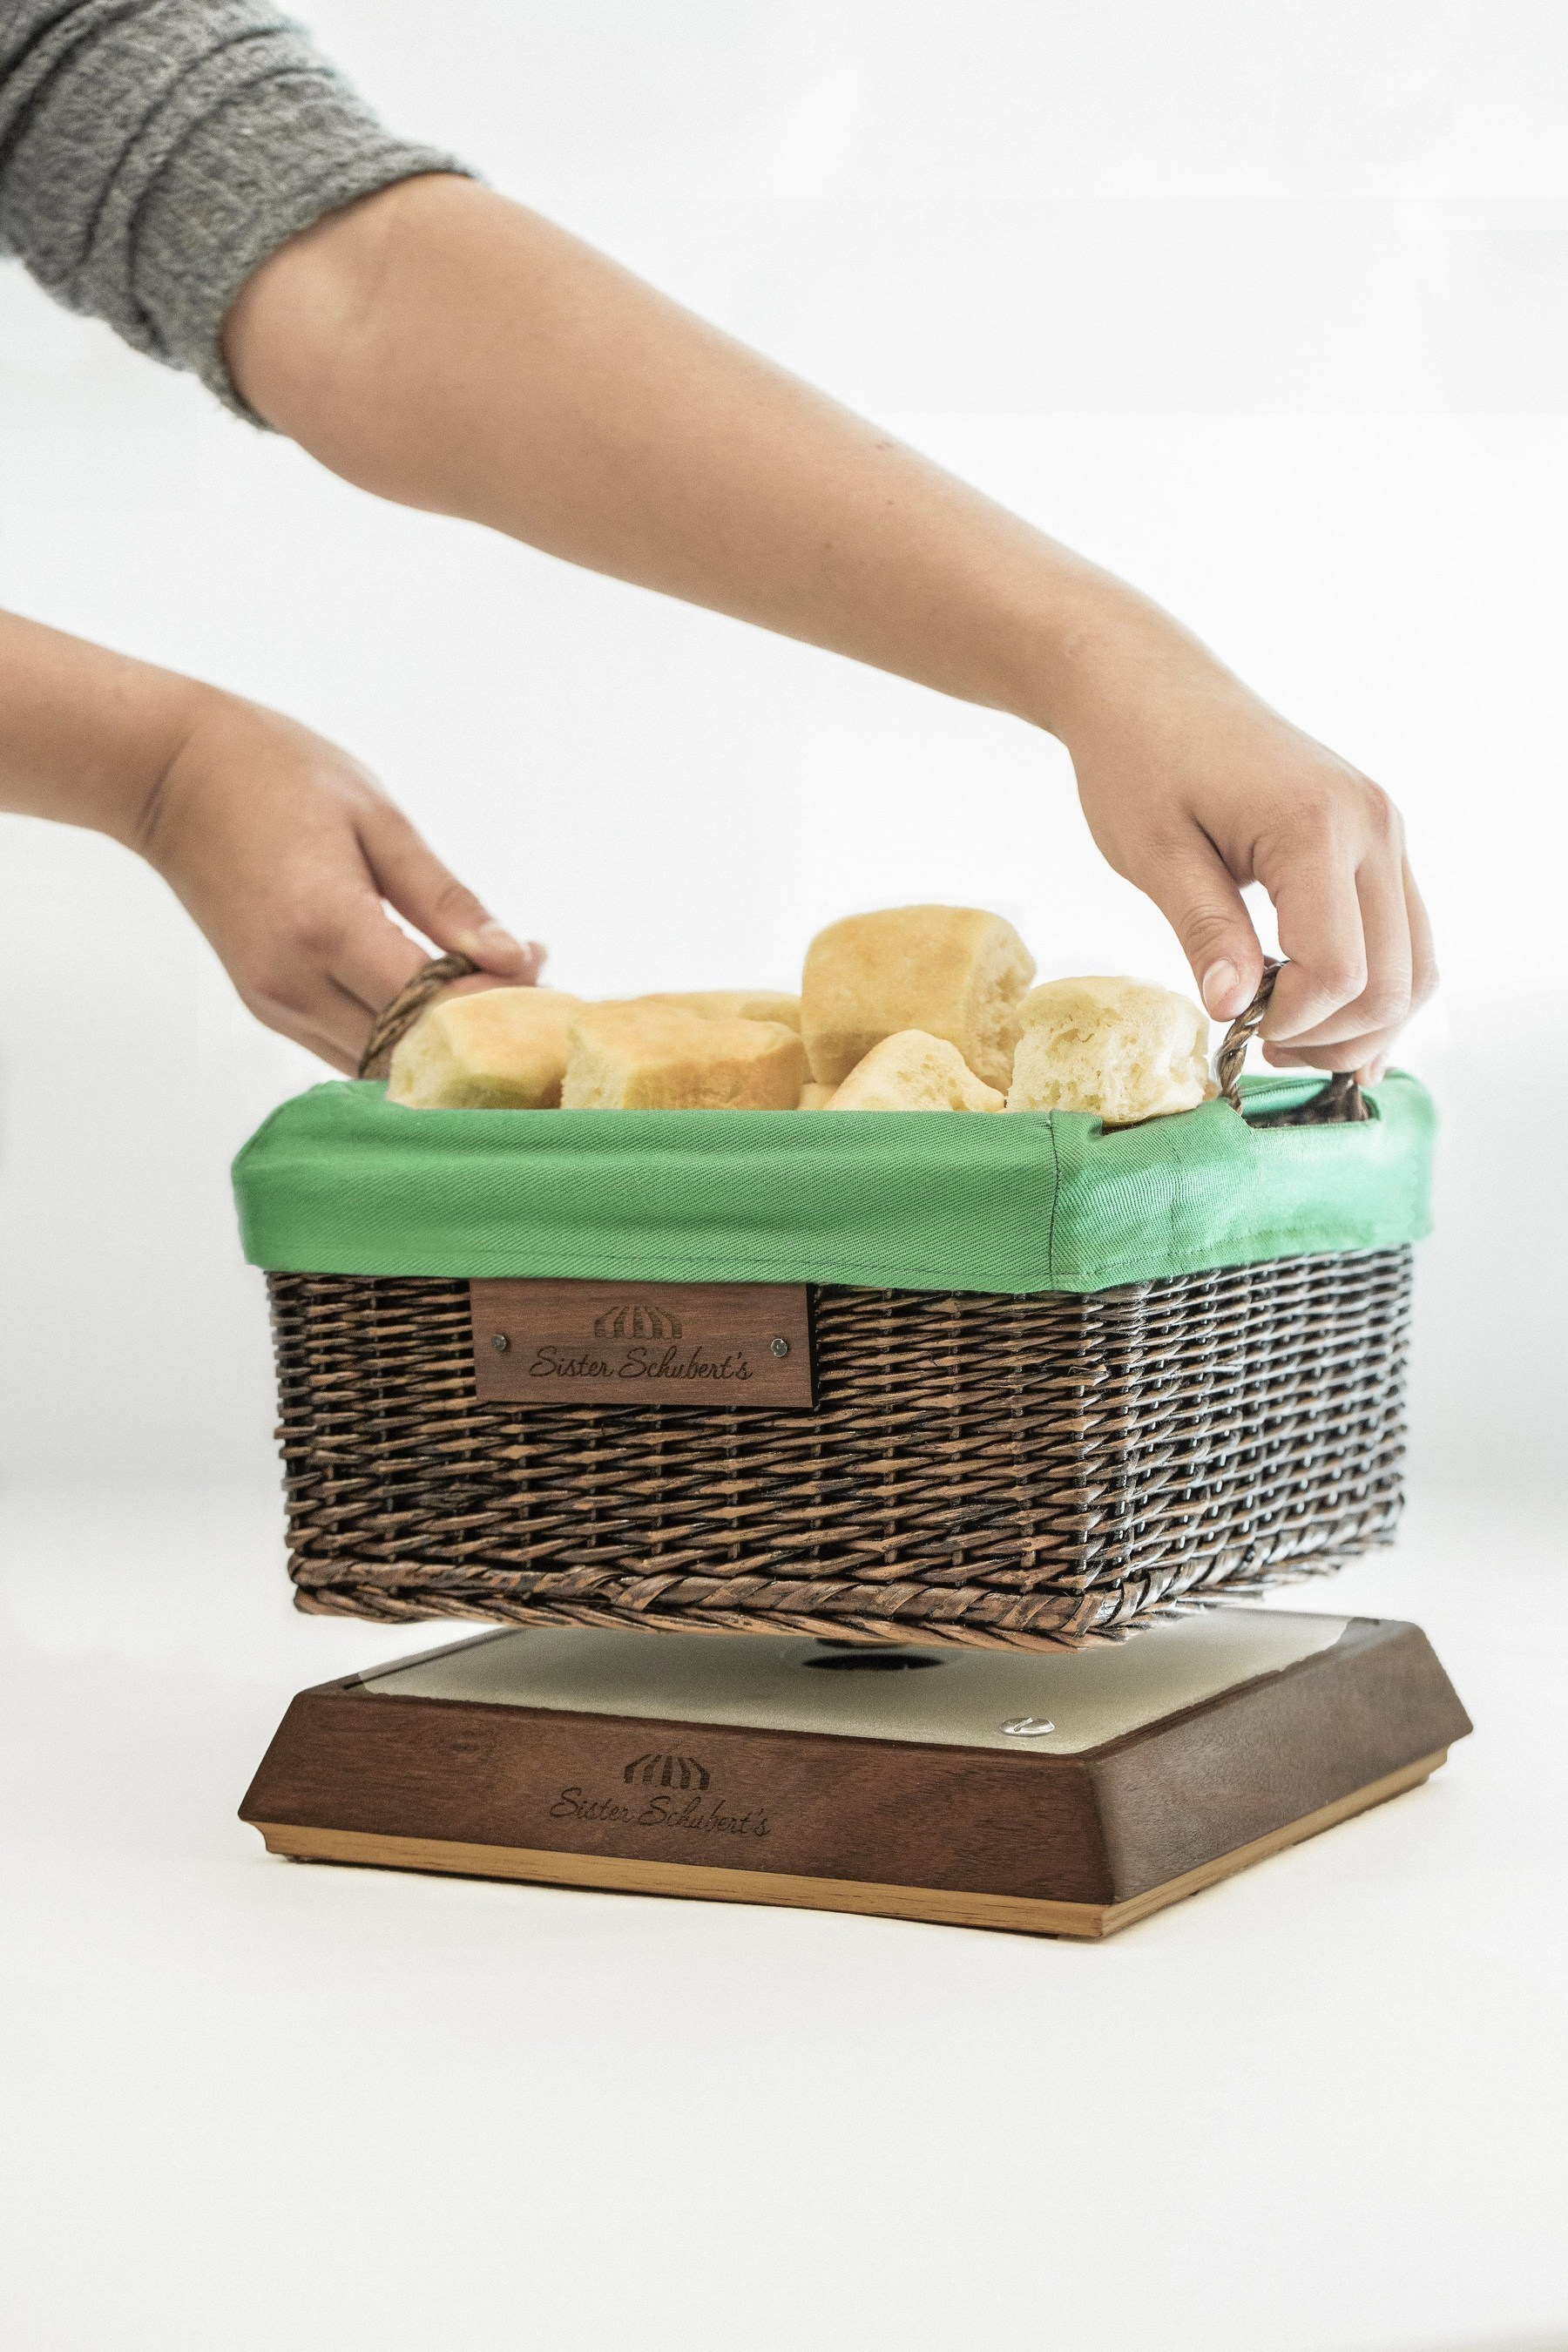 Sister Schubert's, the baked goods brand dedicated to encouraging family connections through warm family dinners, has developed the ultimate tool to help families disconnect from technology and reconnect with each other. The Basket of Warmth keeps dinner rolls warm, but only when the family's electronic devices are plugged into the base and tucked out of the way of dinner conversations.